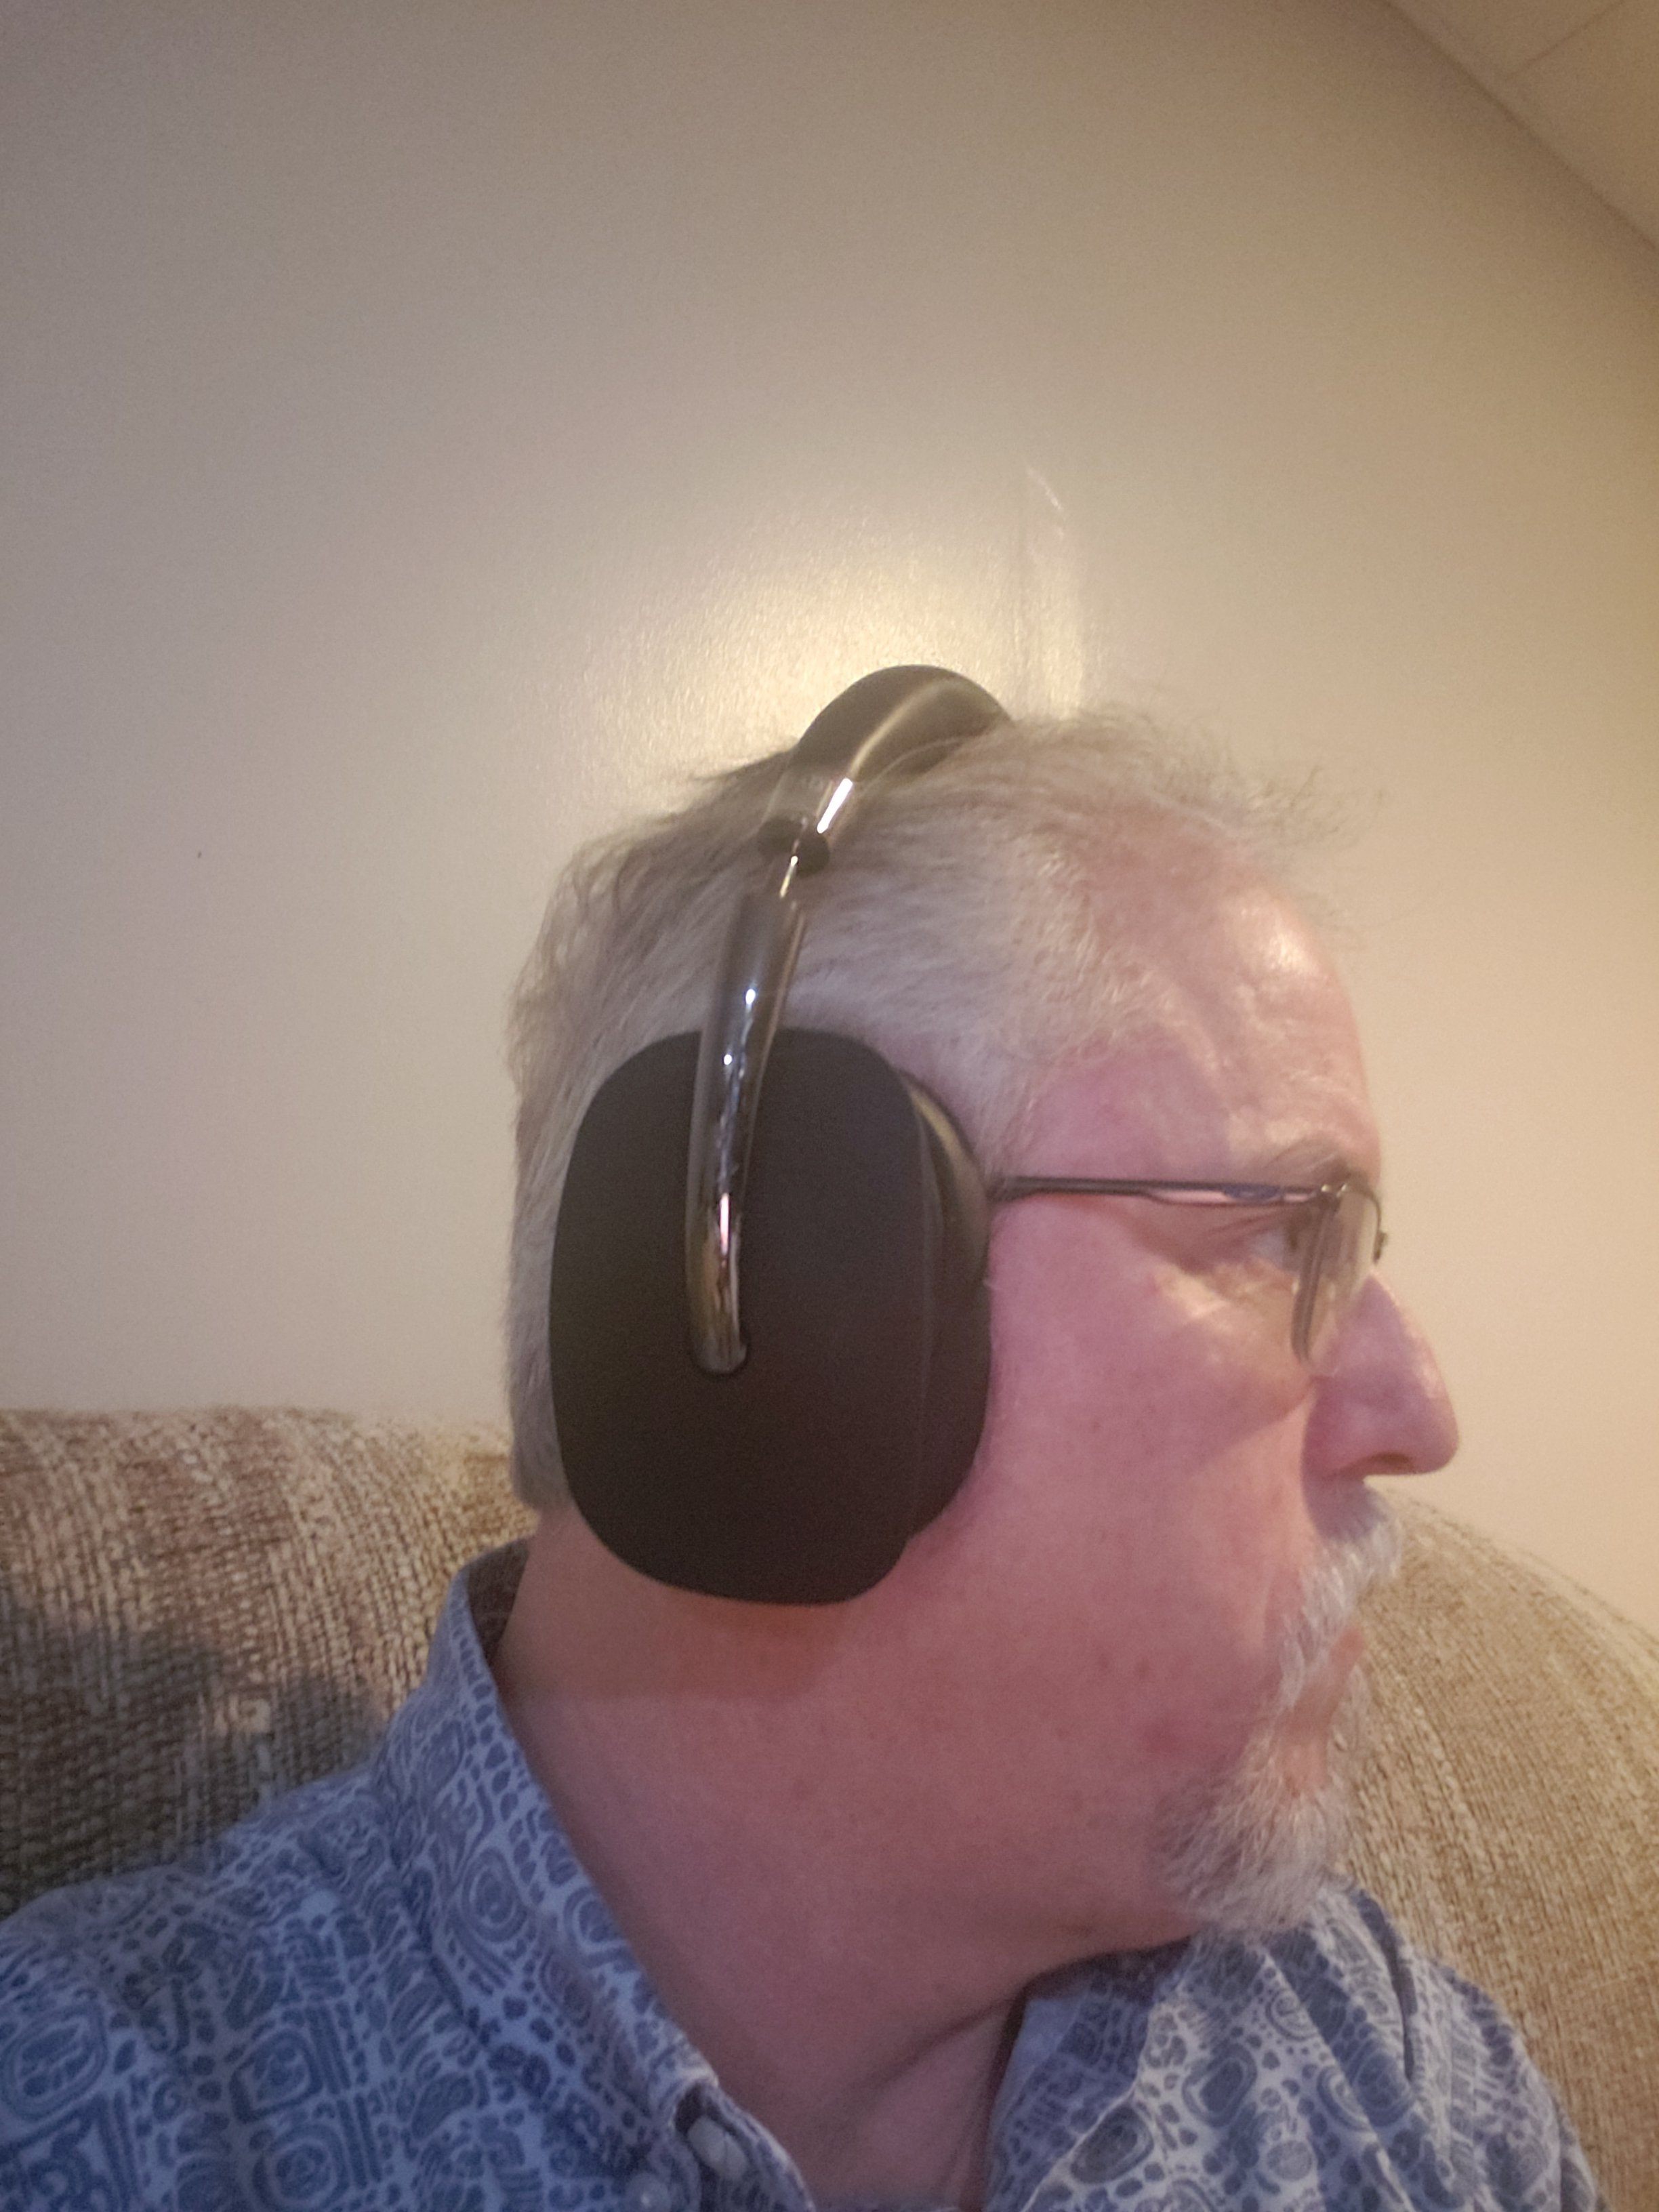 SONY WH1000XM3 - better than QC35 in noise cancelling